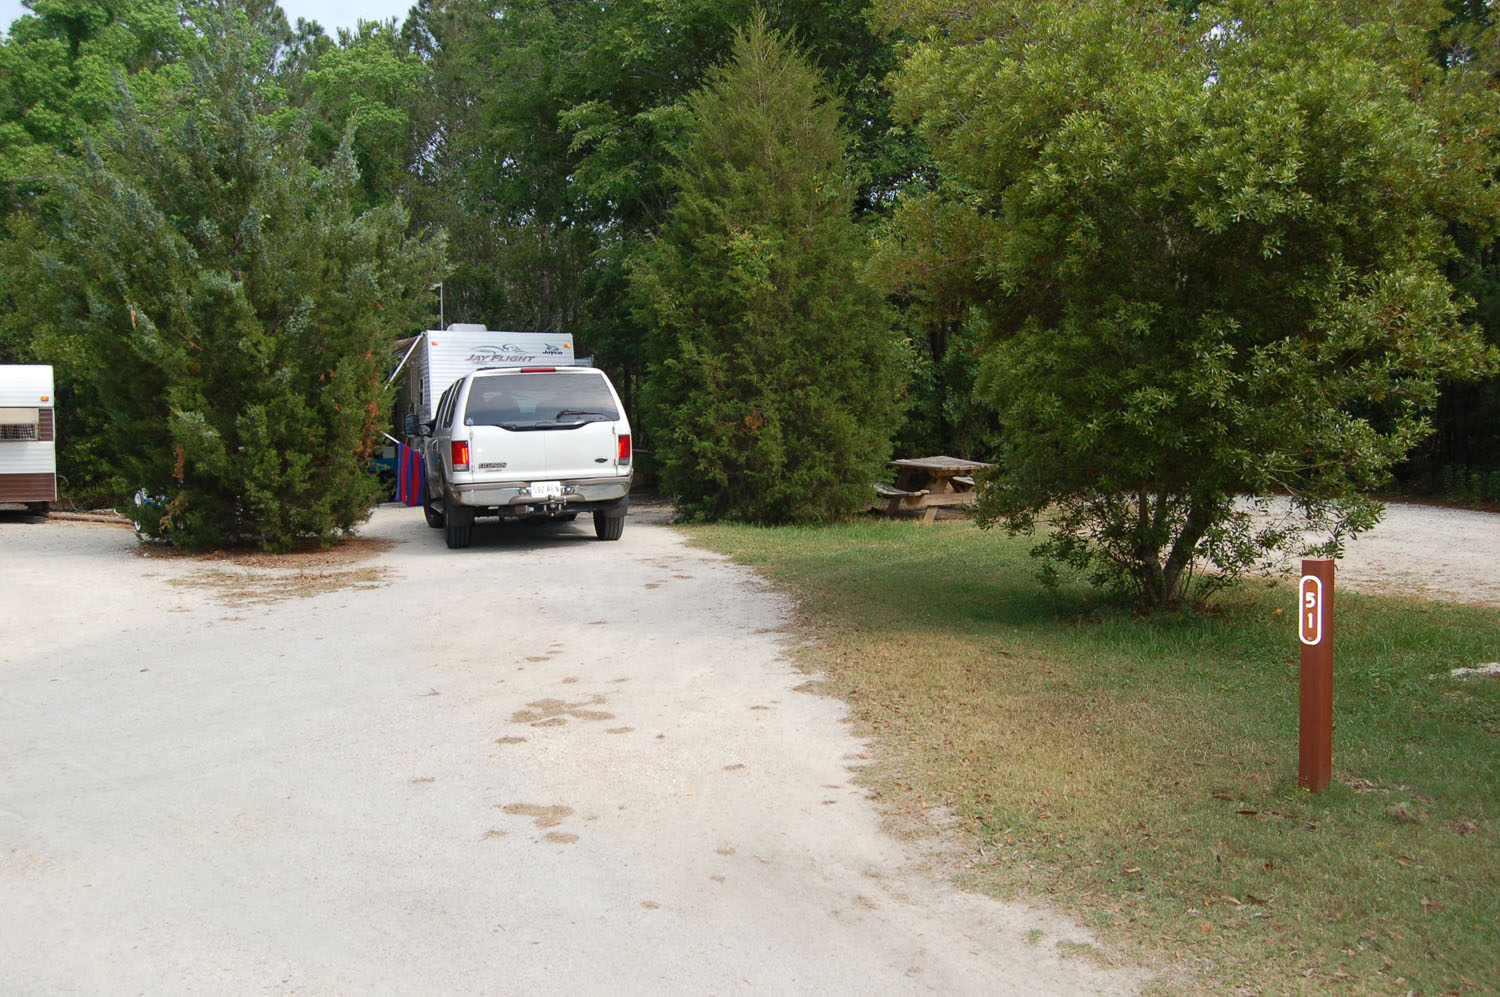 Image of campsite #51 at the Campground at James Island County Park